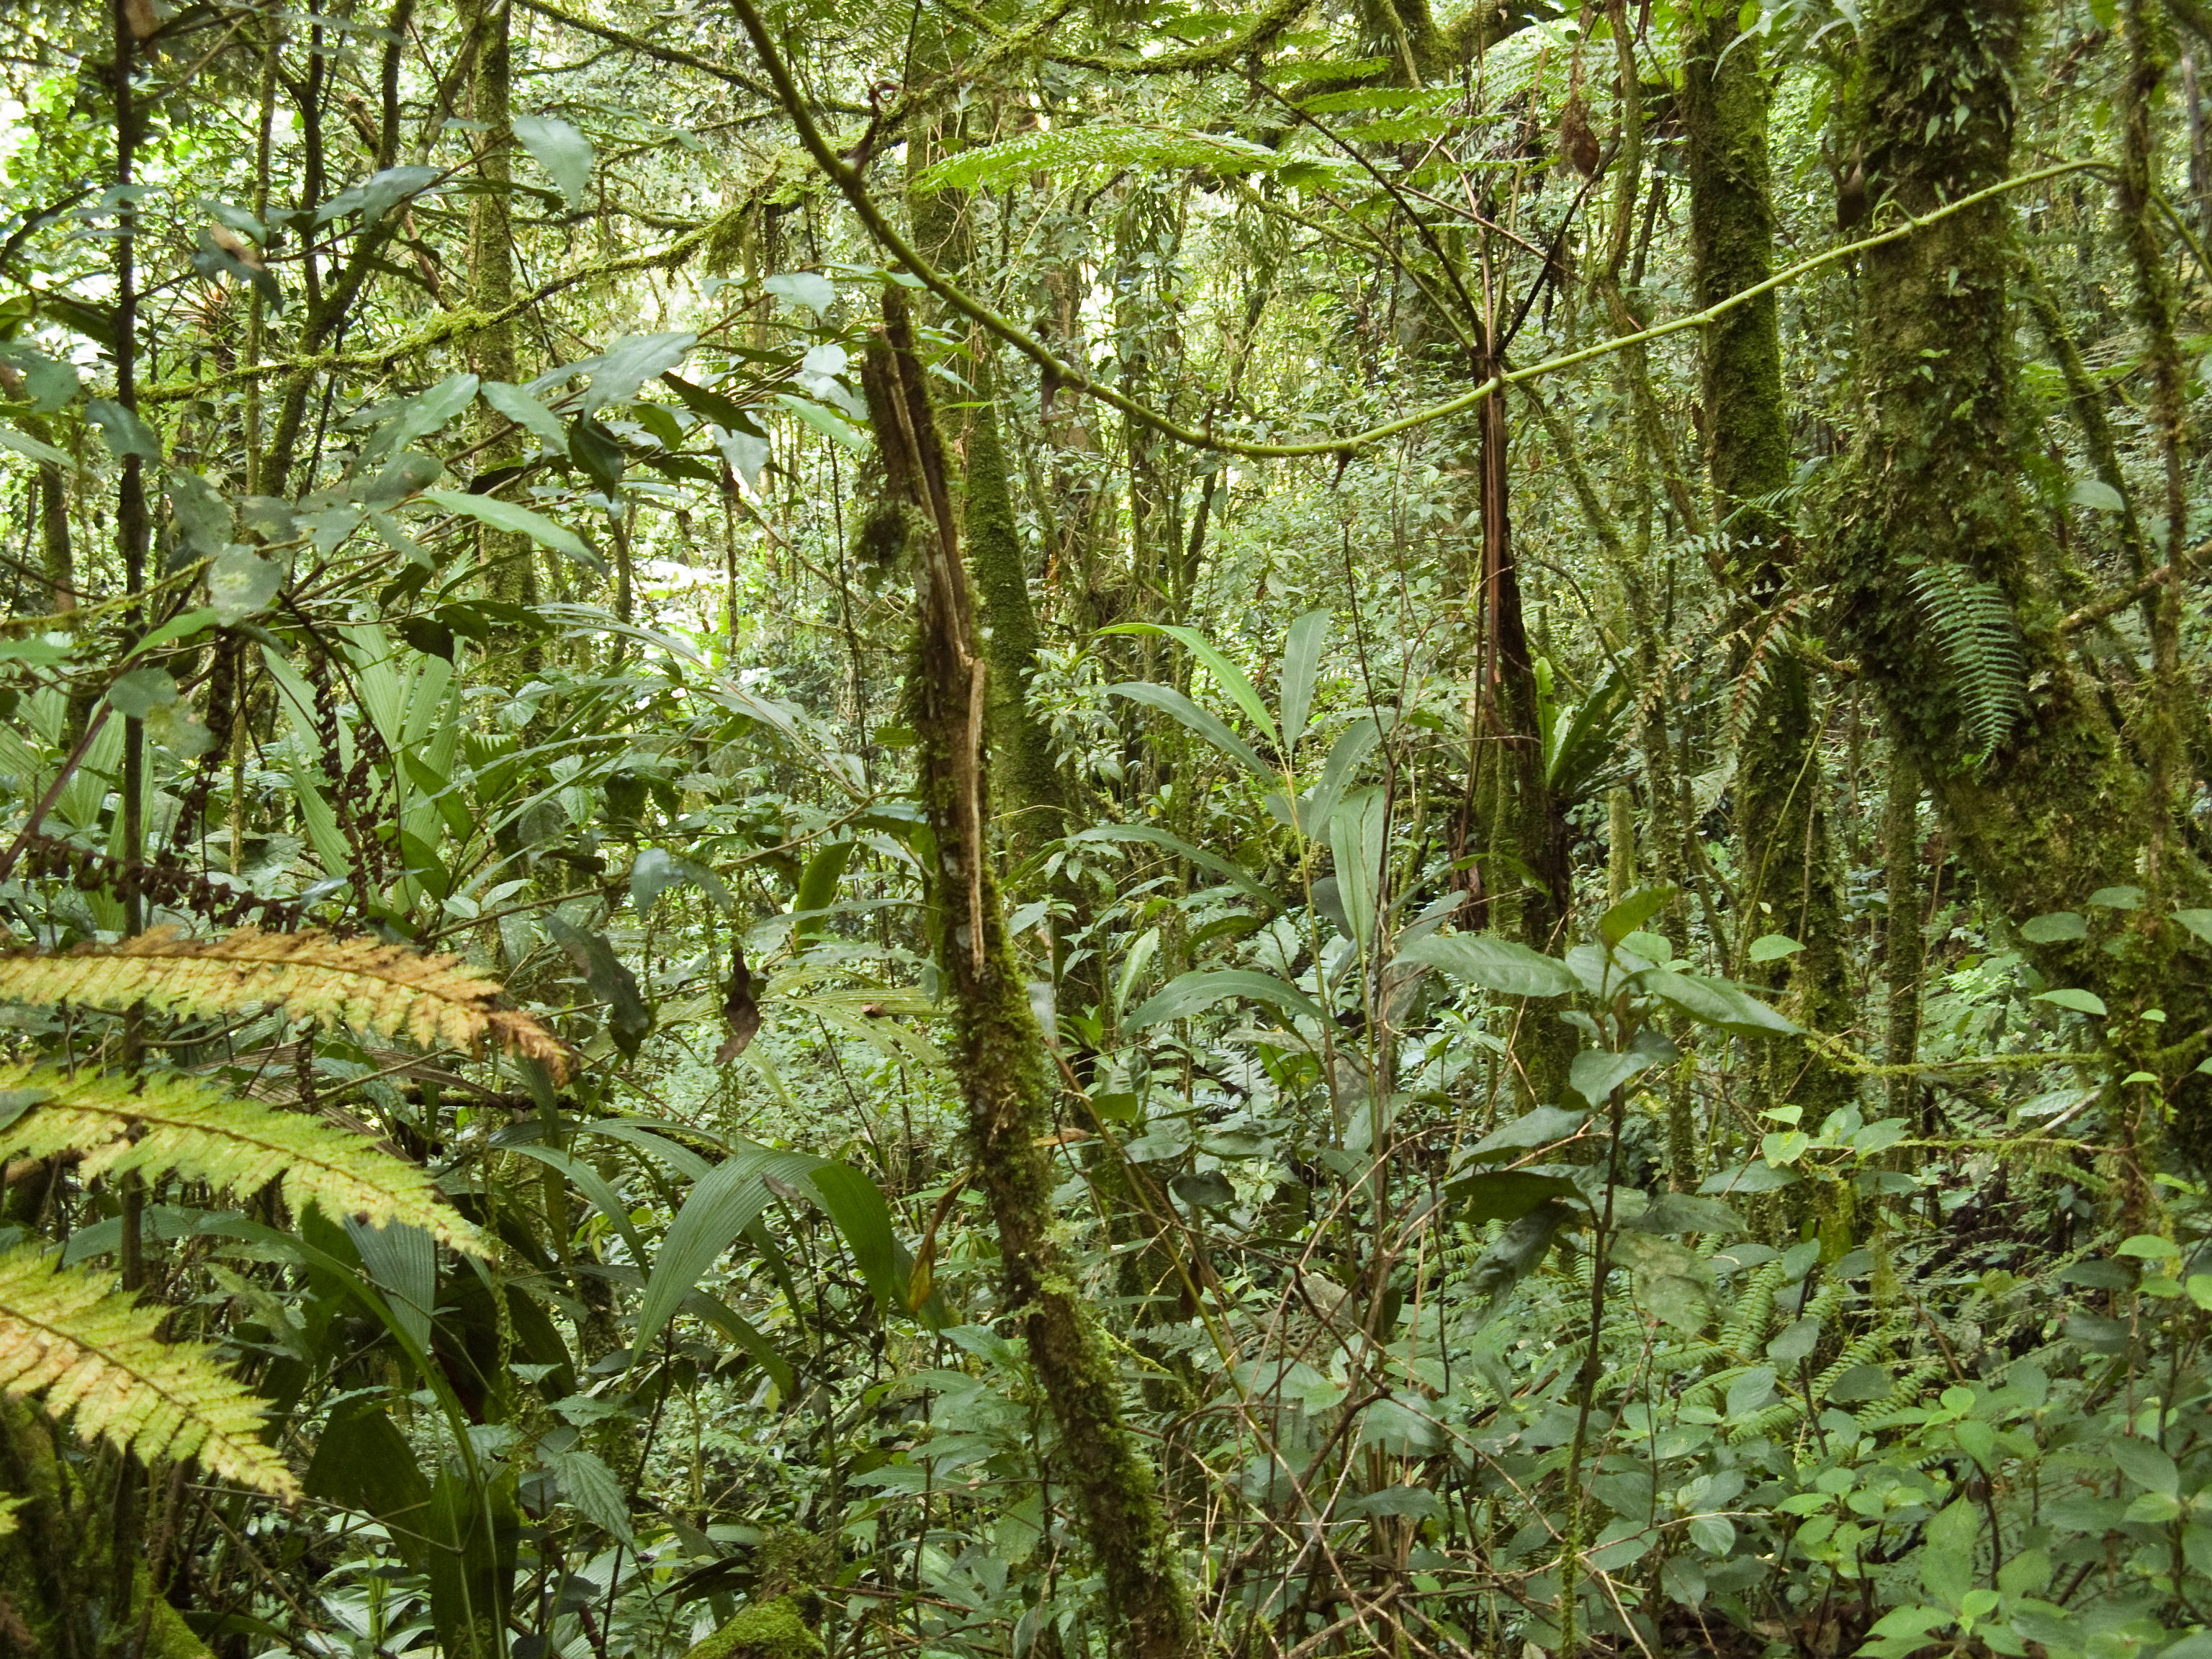 Tropical Highland Forest Tropical Montane Forest at